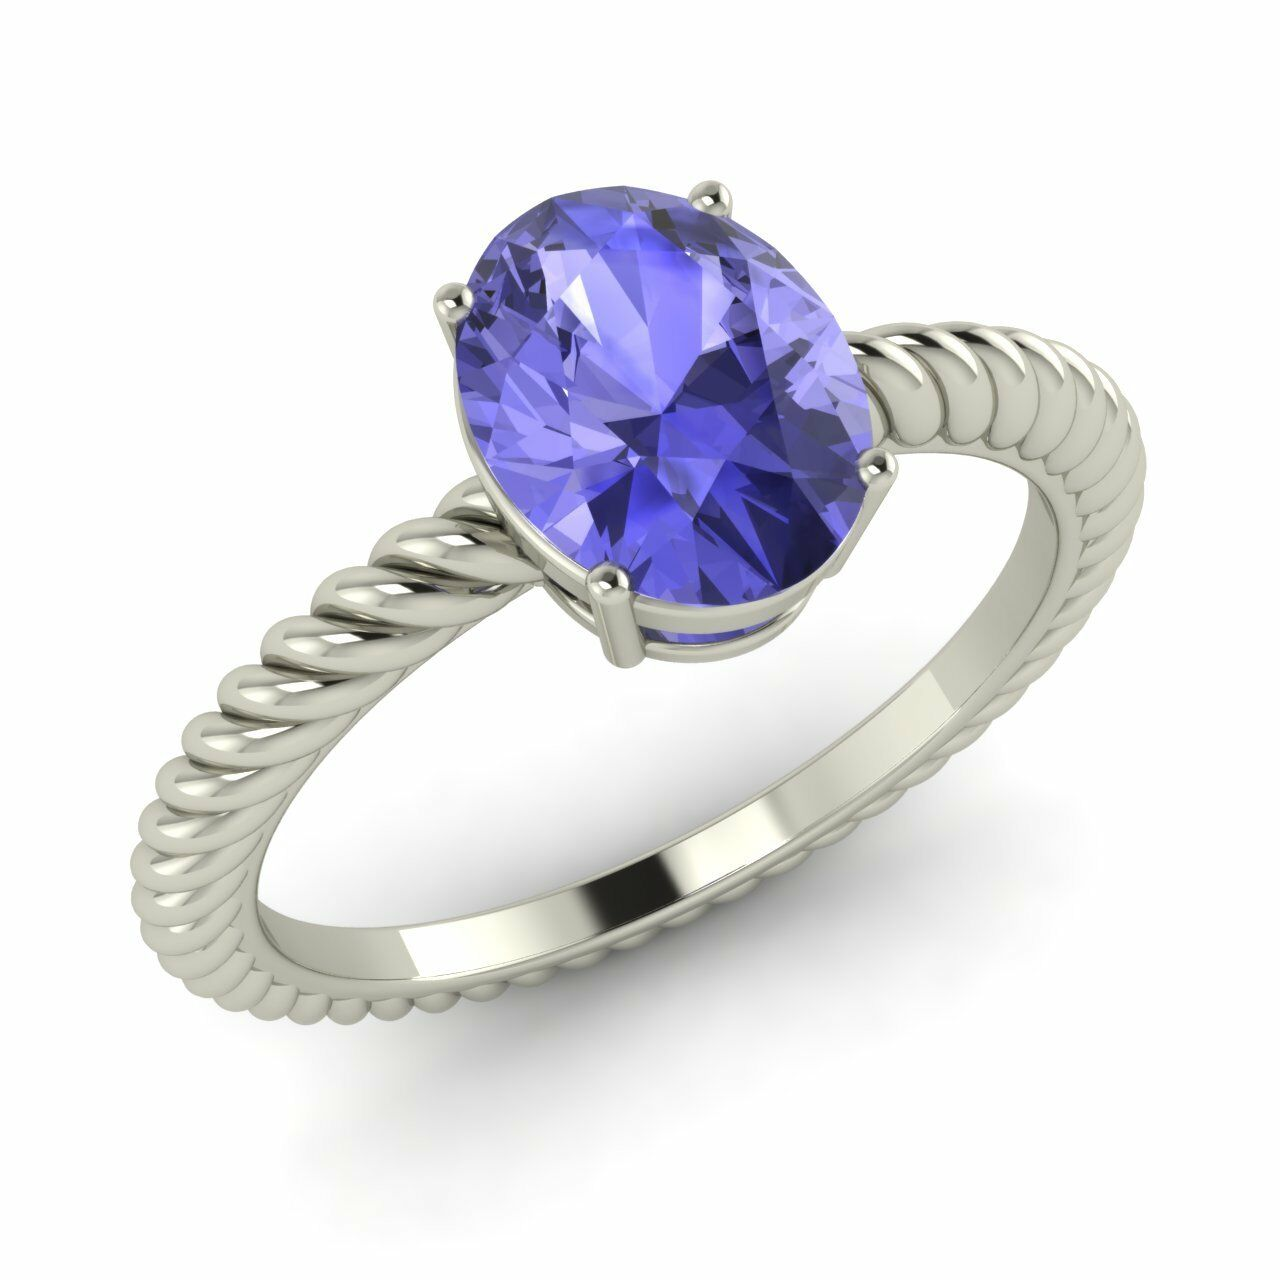 Certified 1.1 Ct Oval Natural Tanzanite Solitaire Engagement Ring 10k White gold